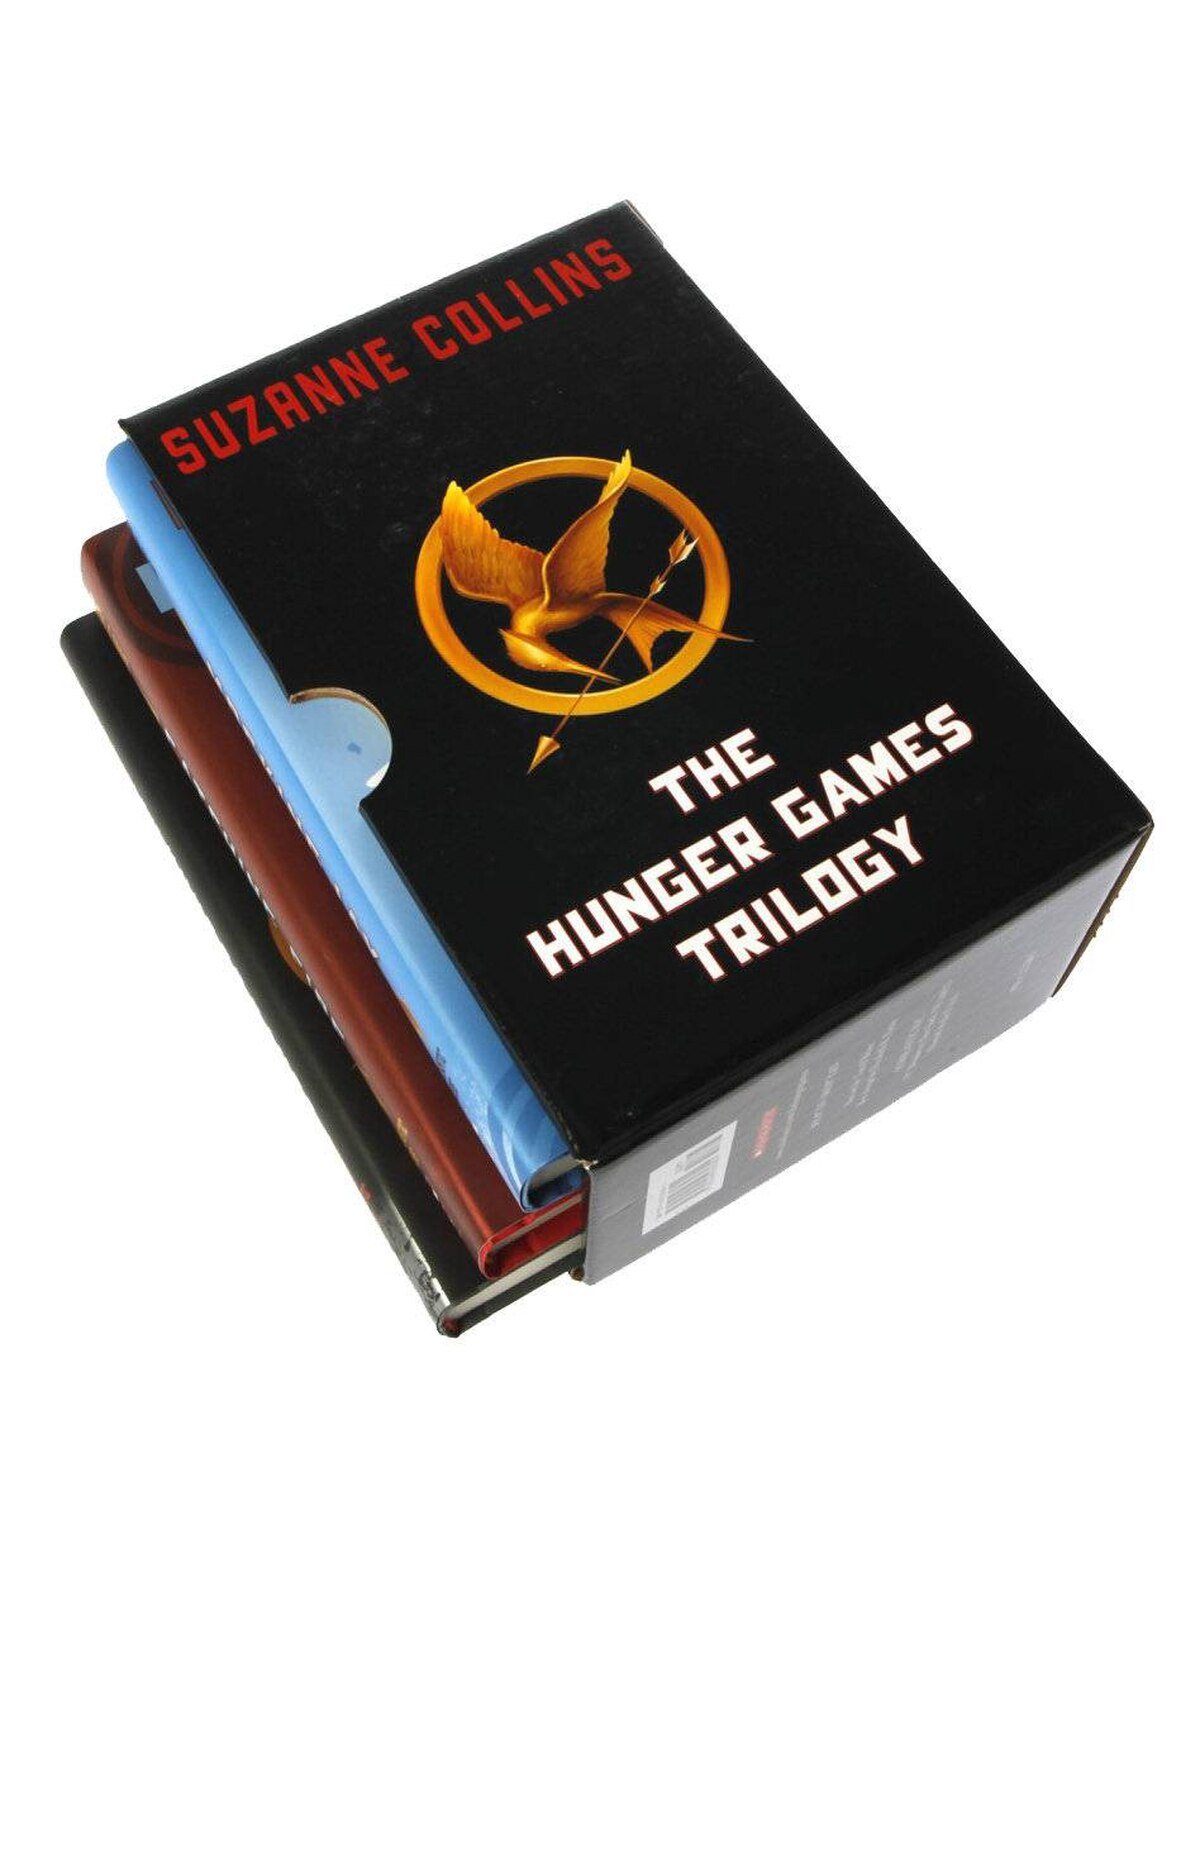 Hunger Games Boxed Set Just when you thought Suzanne Collins's Hunger Games trilogy of young-adult novels couldn't get bigger, Hollywood is swinging into action, with the first film scheduled for release this spring. For any young person (or adult) who doesn't know yet, this handsome set packages the entire phenomenon in a single box. $37.60 at amazon.ca; chapters.indigo.ca